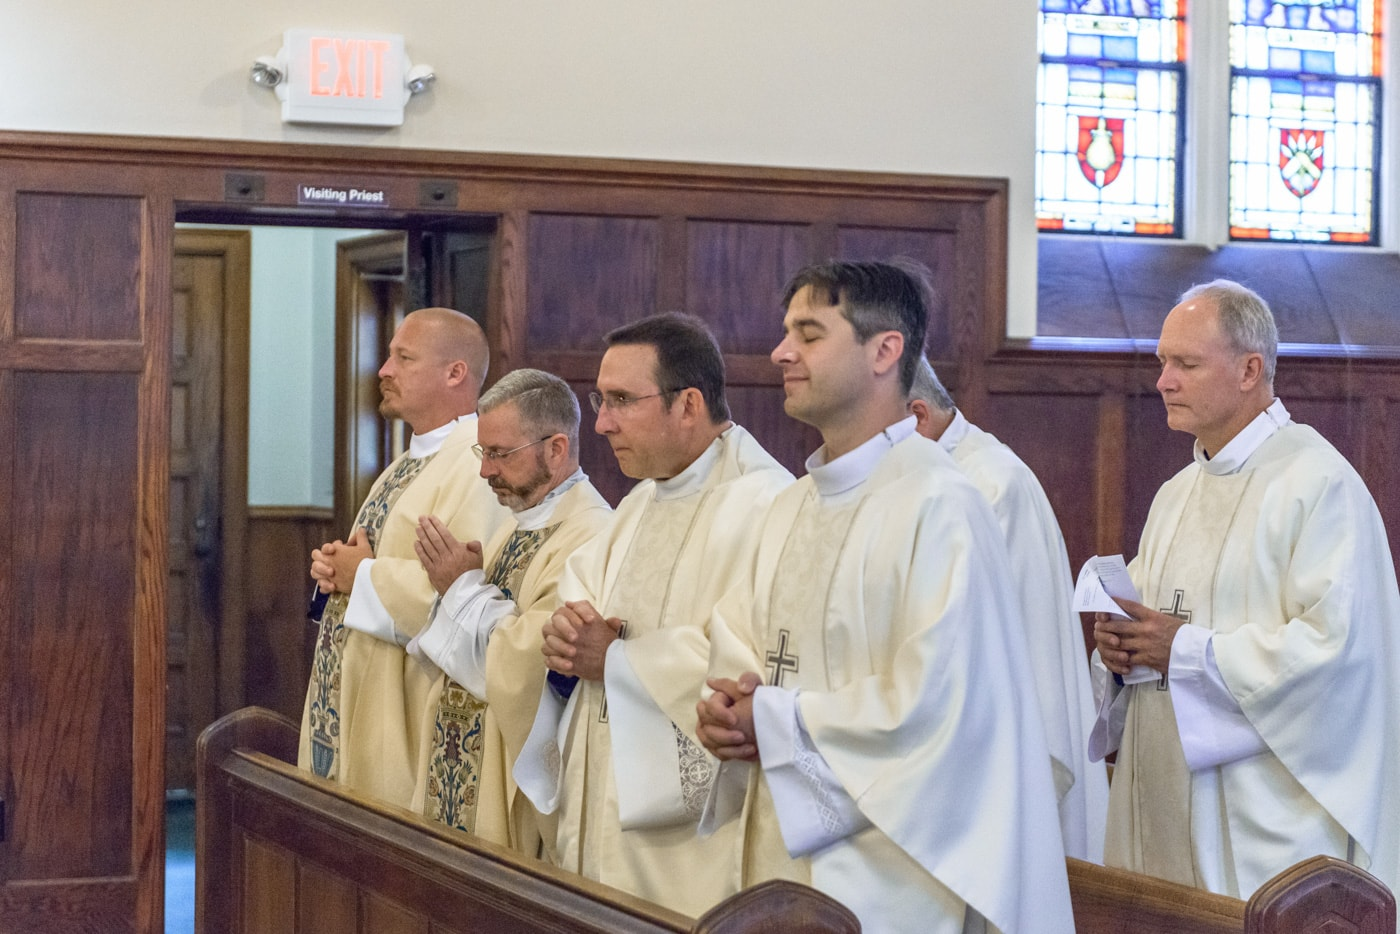 Six priests in the pews during a wedding ceremony at St James Catholic Church in Falls Church, Virginia